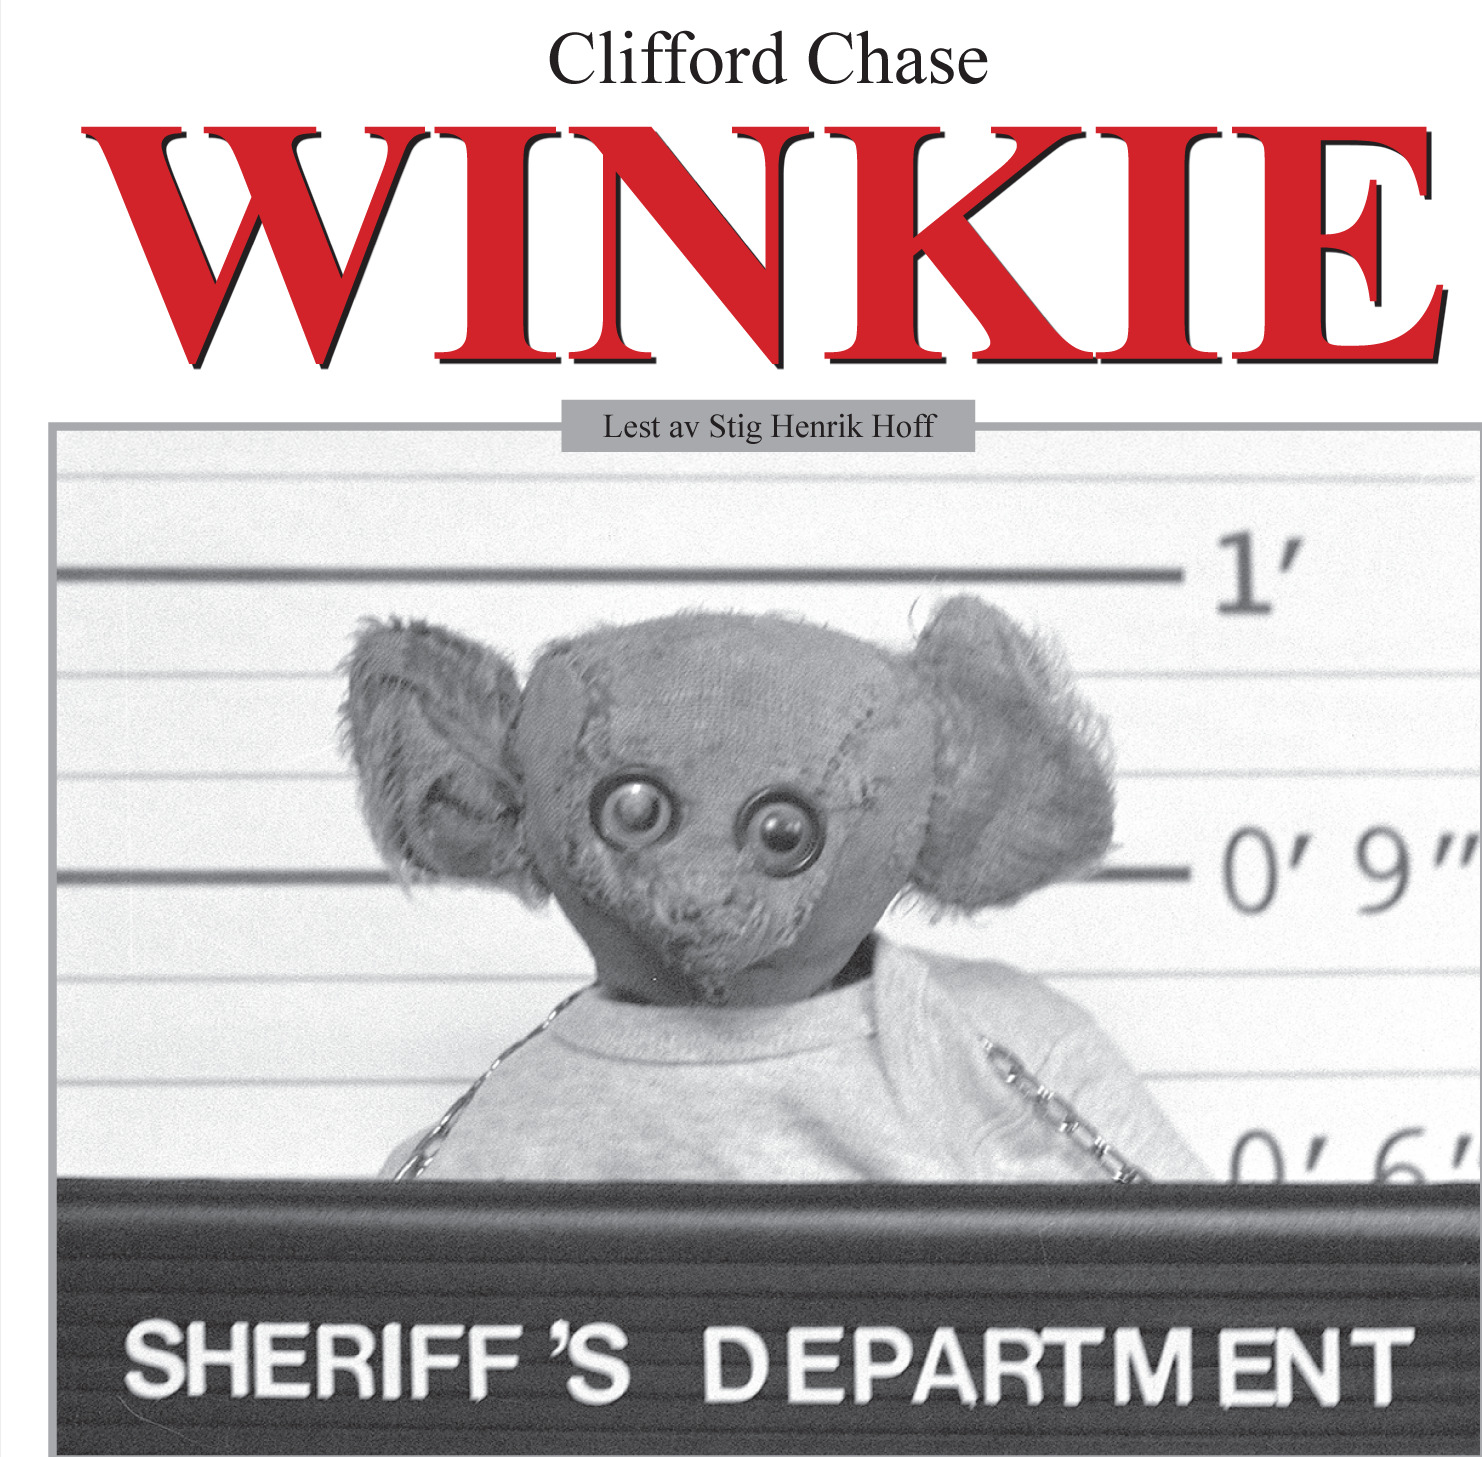 winkie chase clifford